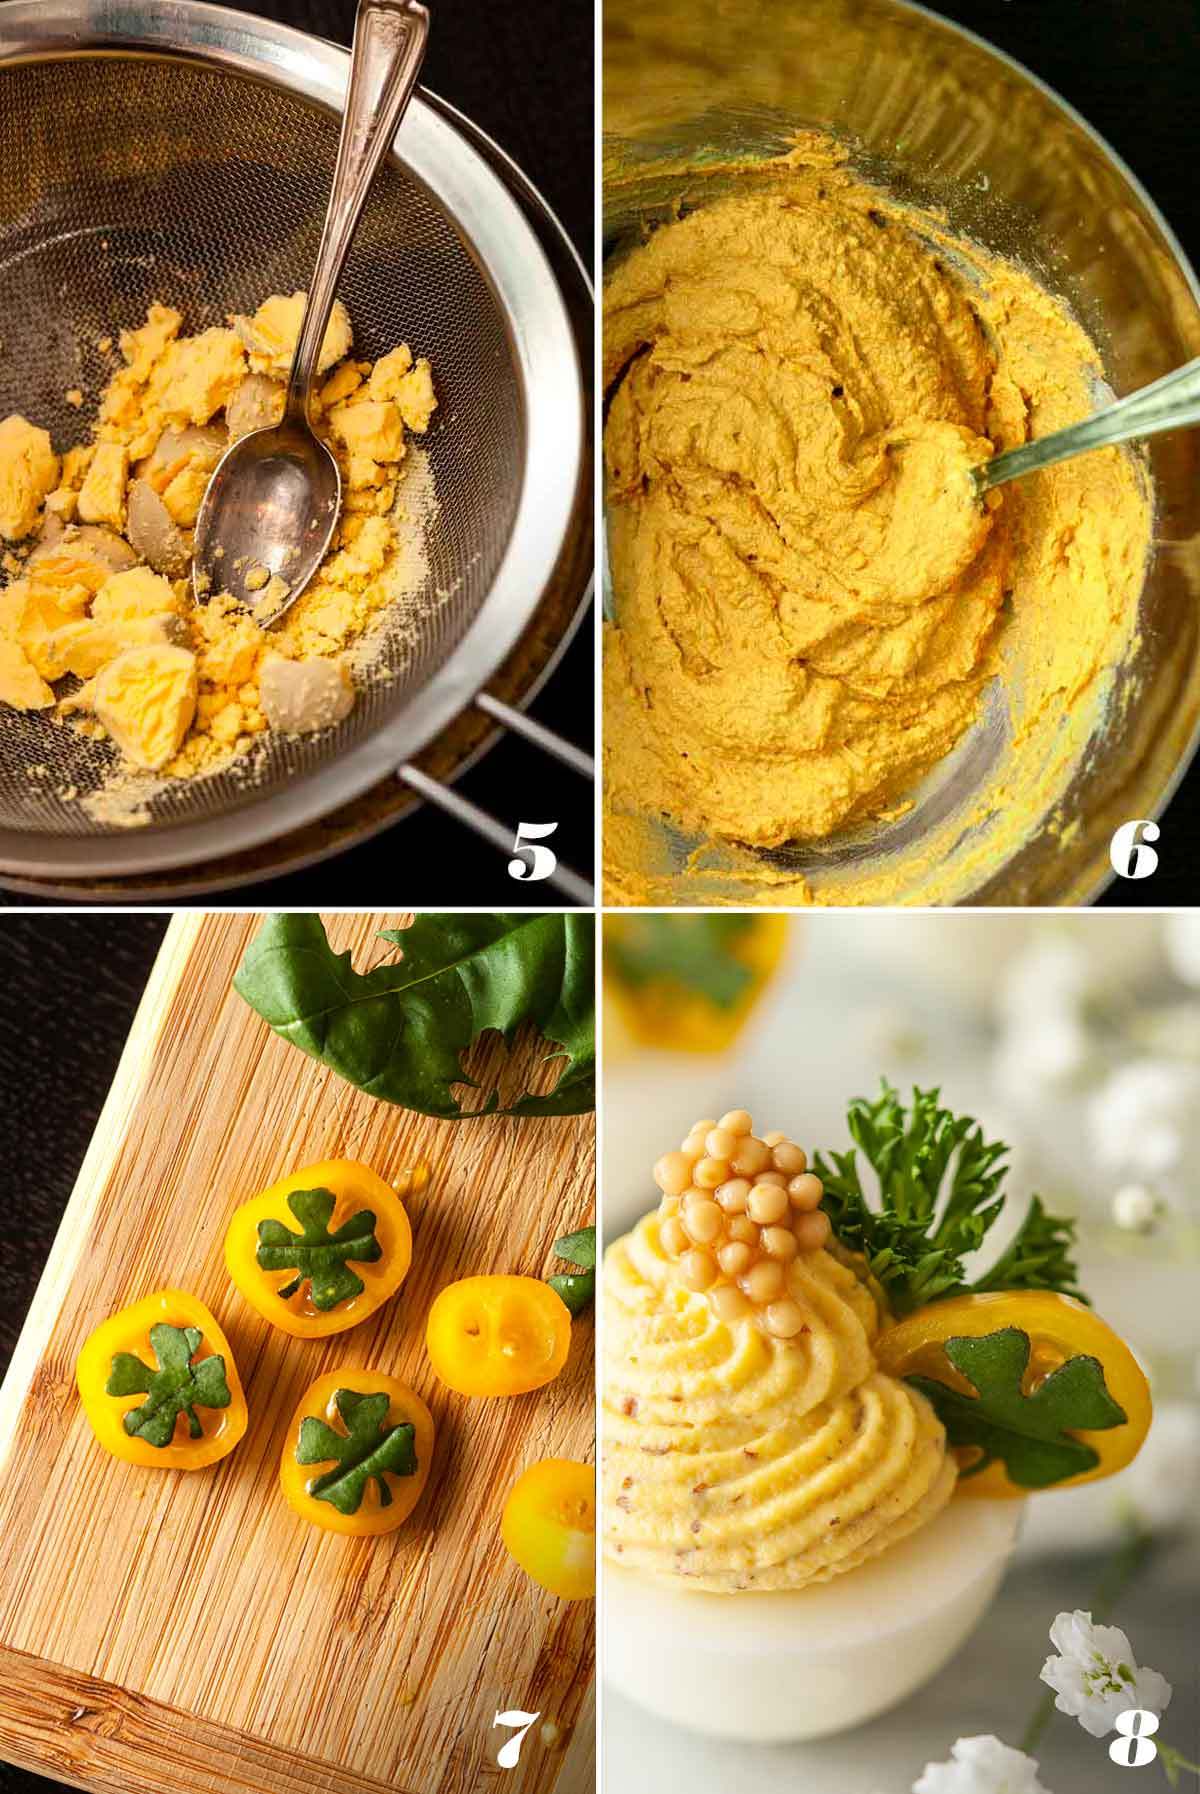 4 numbered images showing how to make St. Patrick's Day Deviled Eggs.